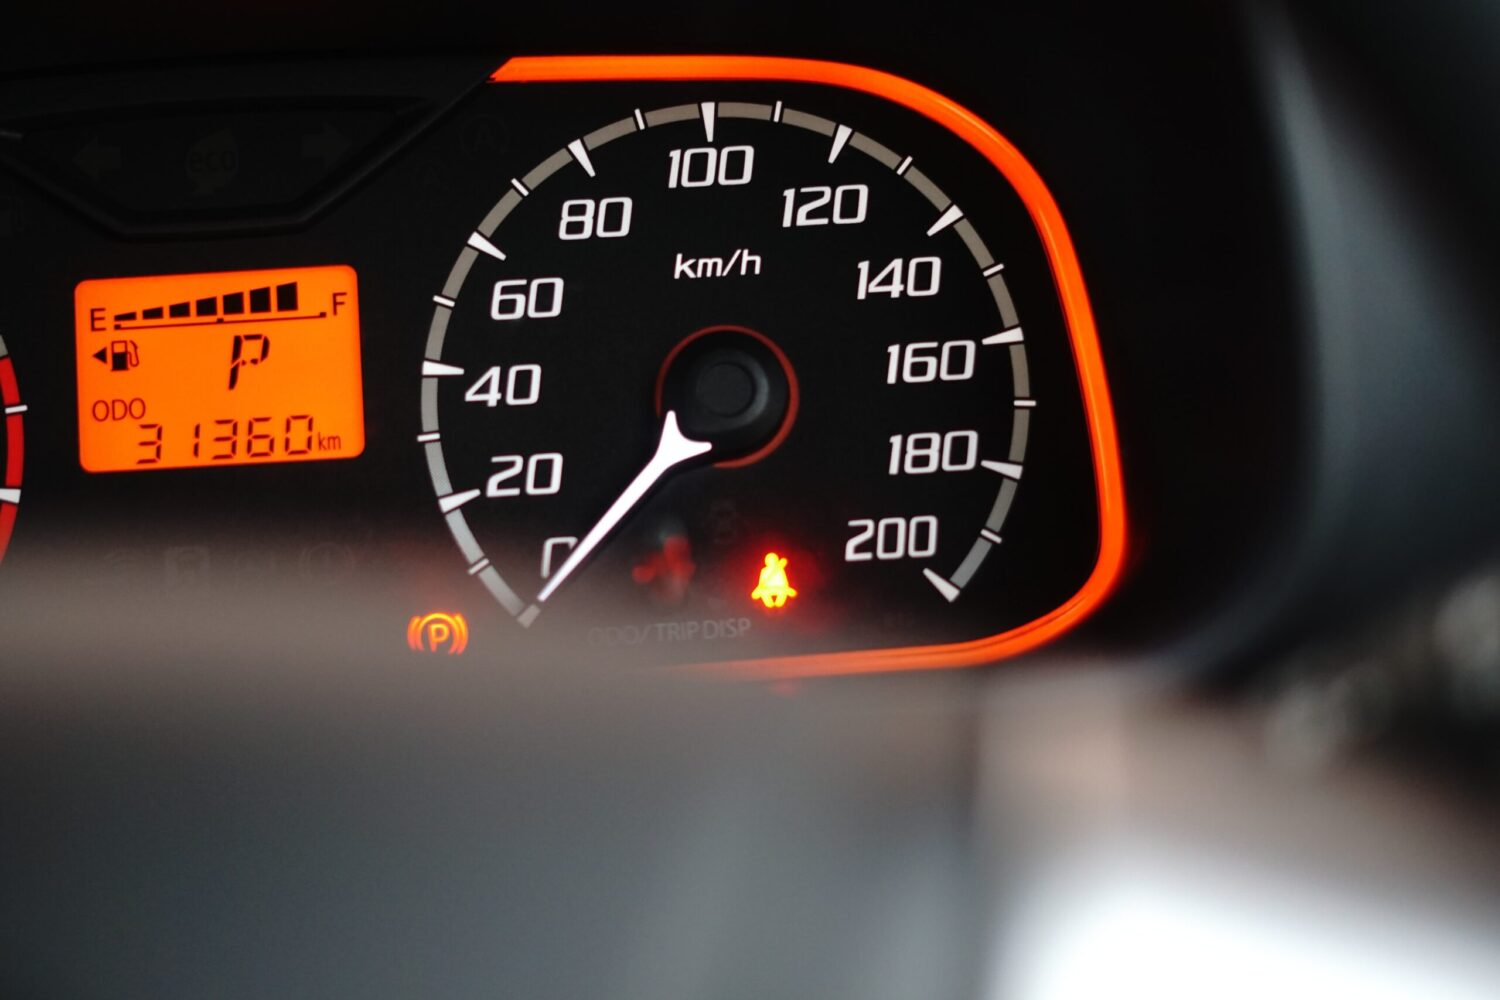 Arrow in Fuel Gauge shows the fuel cap is located on the left side of the vehicle.